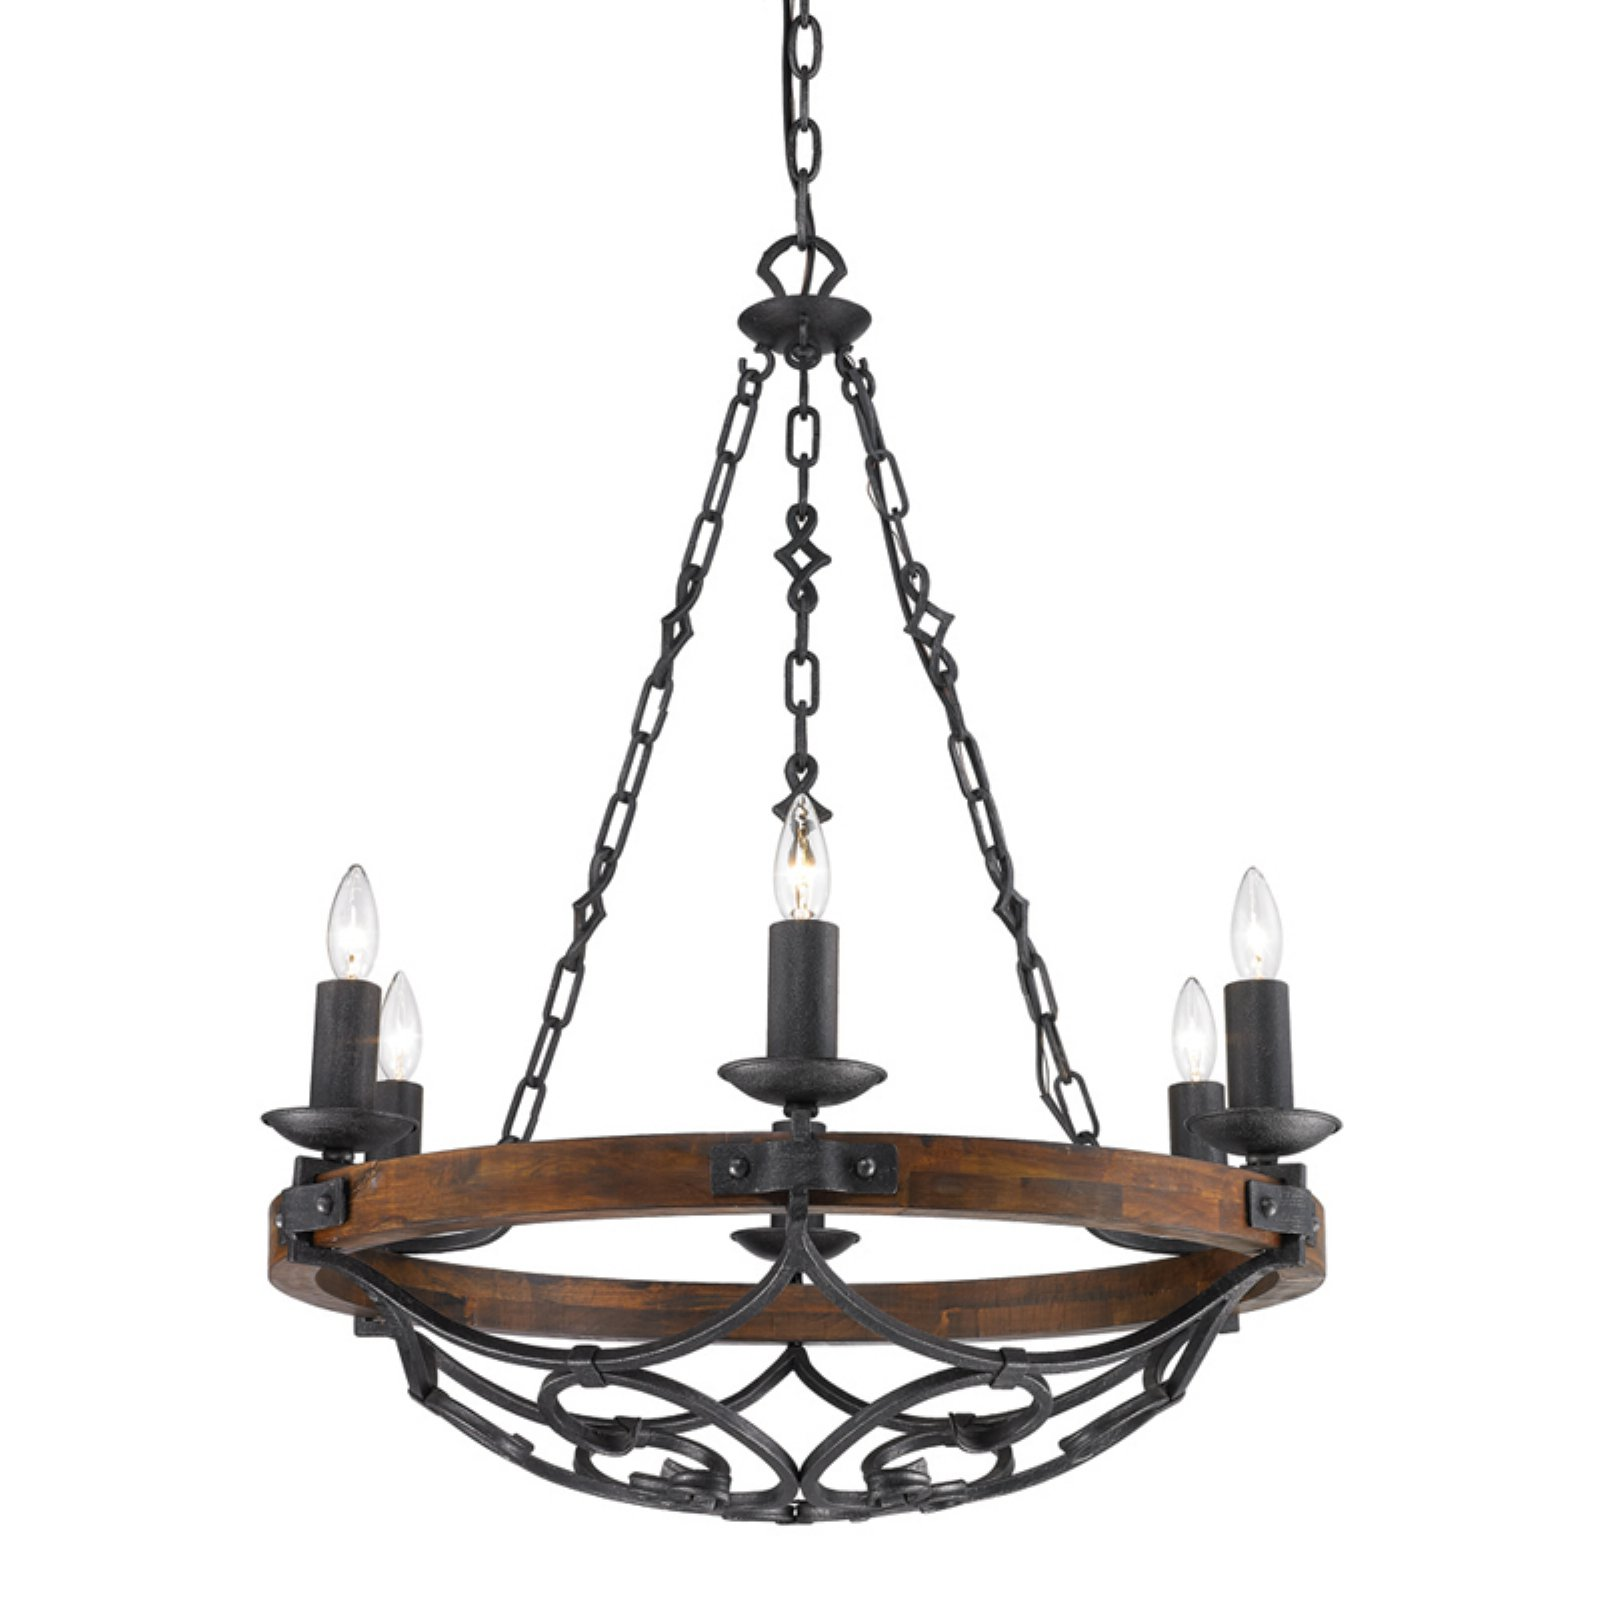 exceptional Wildon Home Chandelier Part - 9: Wildon Home Madera 6 Light Candle Chandelier - Walmart.com